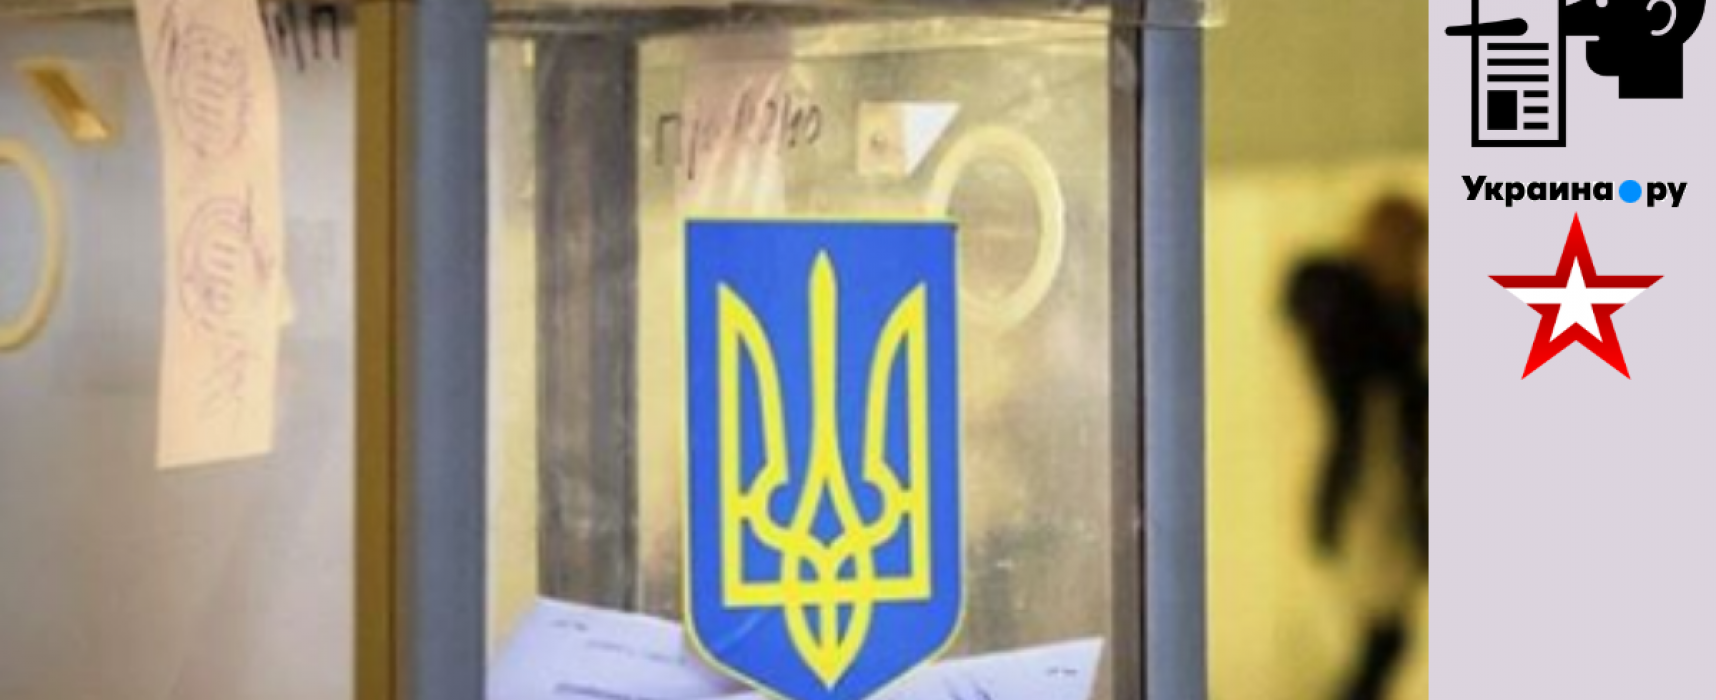 Fake: Ukrainian Presidential Elections Will be Illegitimate